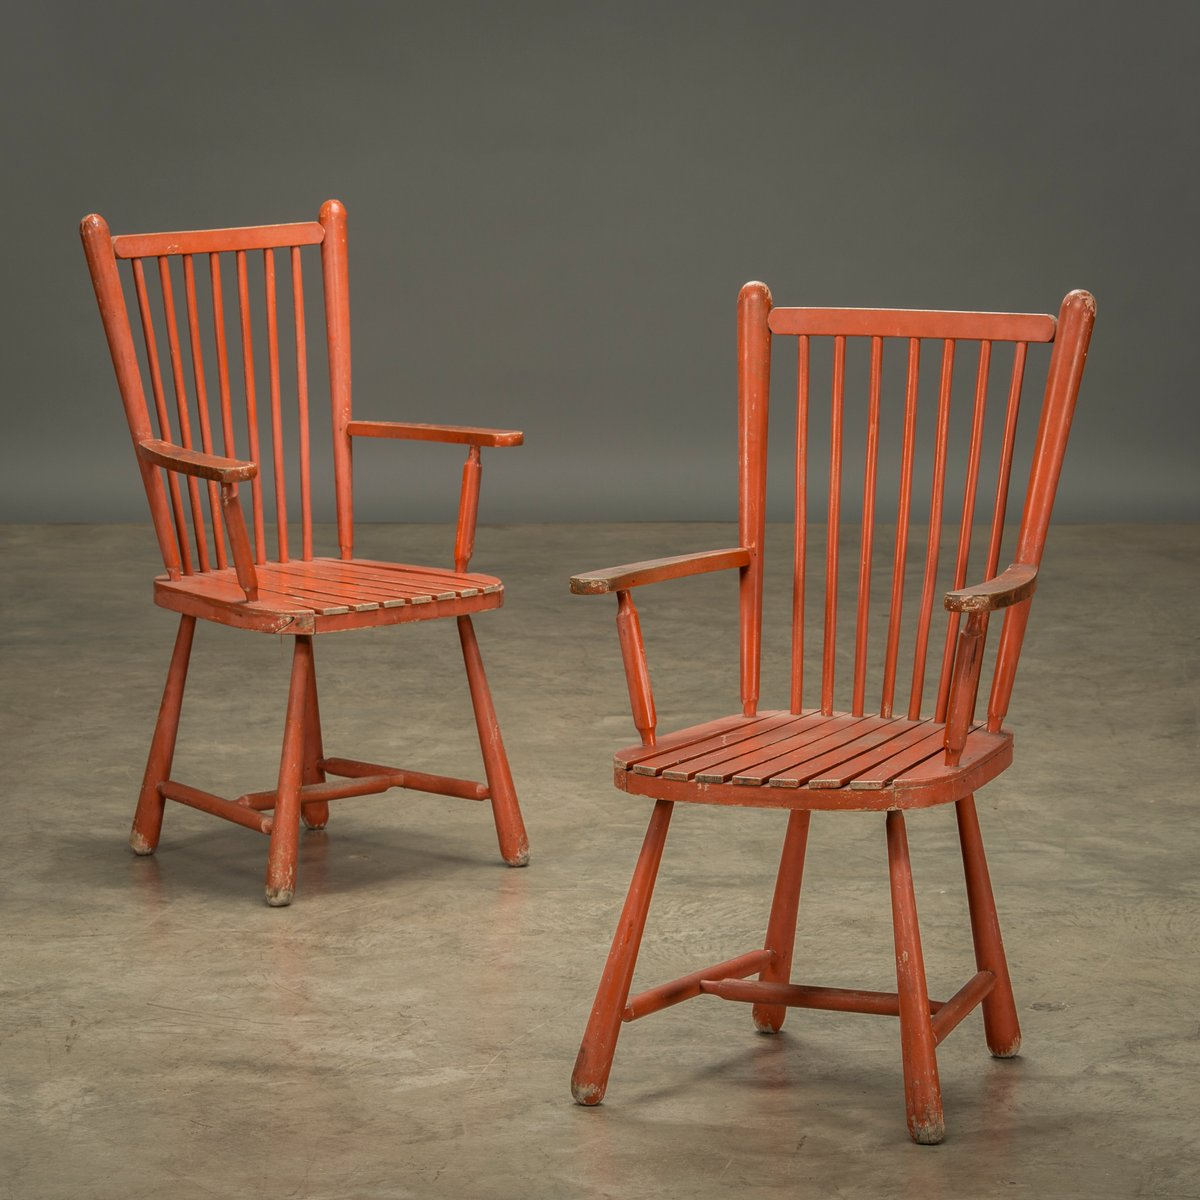 Vintage Wooden Chairs, Set Of 2 For Sale At Pamono